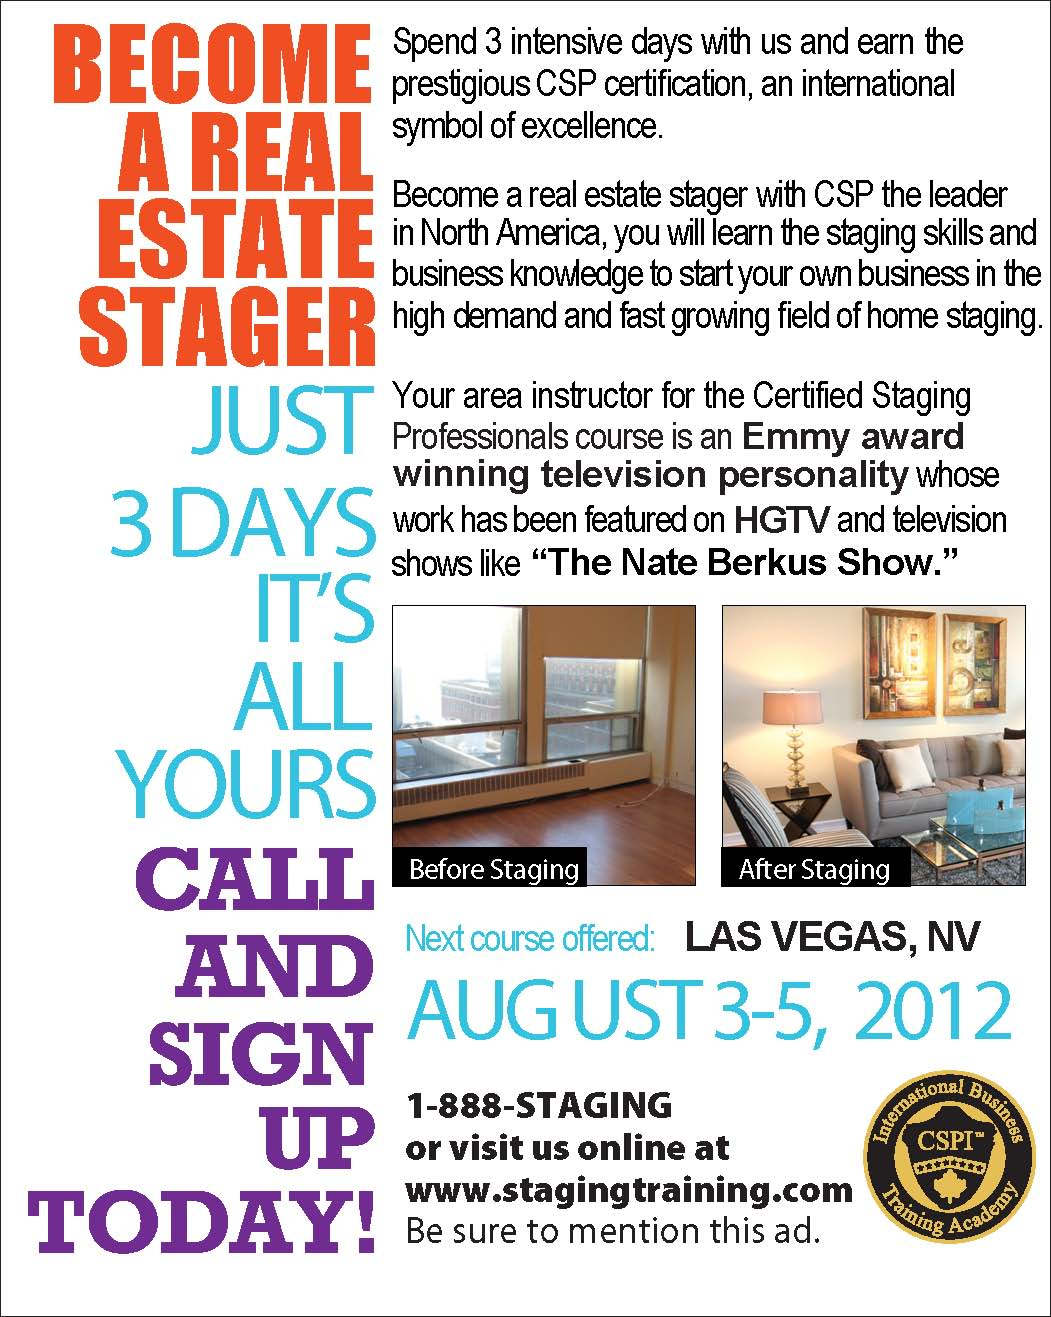 Interior design home staging courses - Be Sure To Check Out Www Stagingtraining Com For A Full Course Schedule Or Call 888 Staging For Free Info On How To Join Me And Become A Home Stager